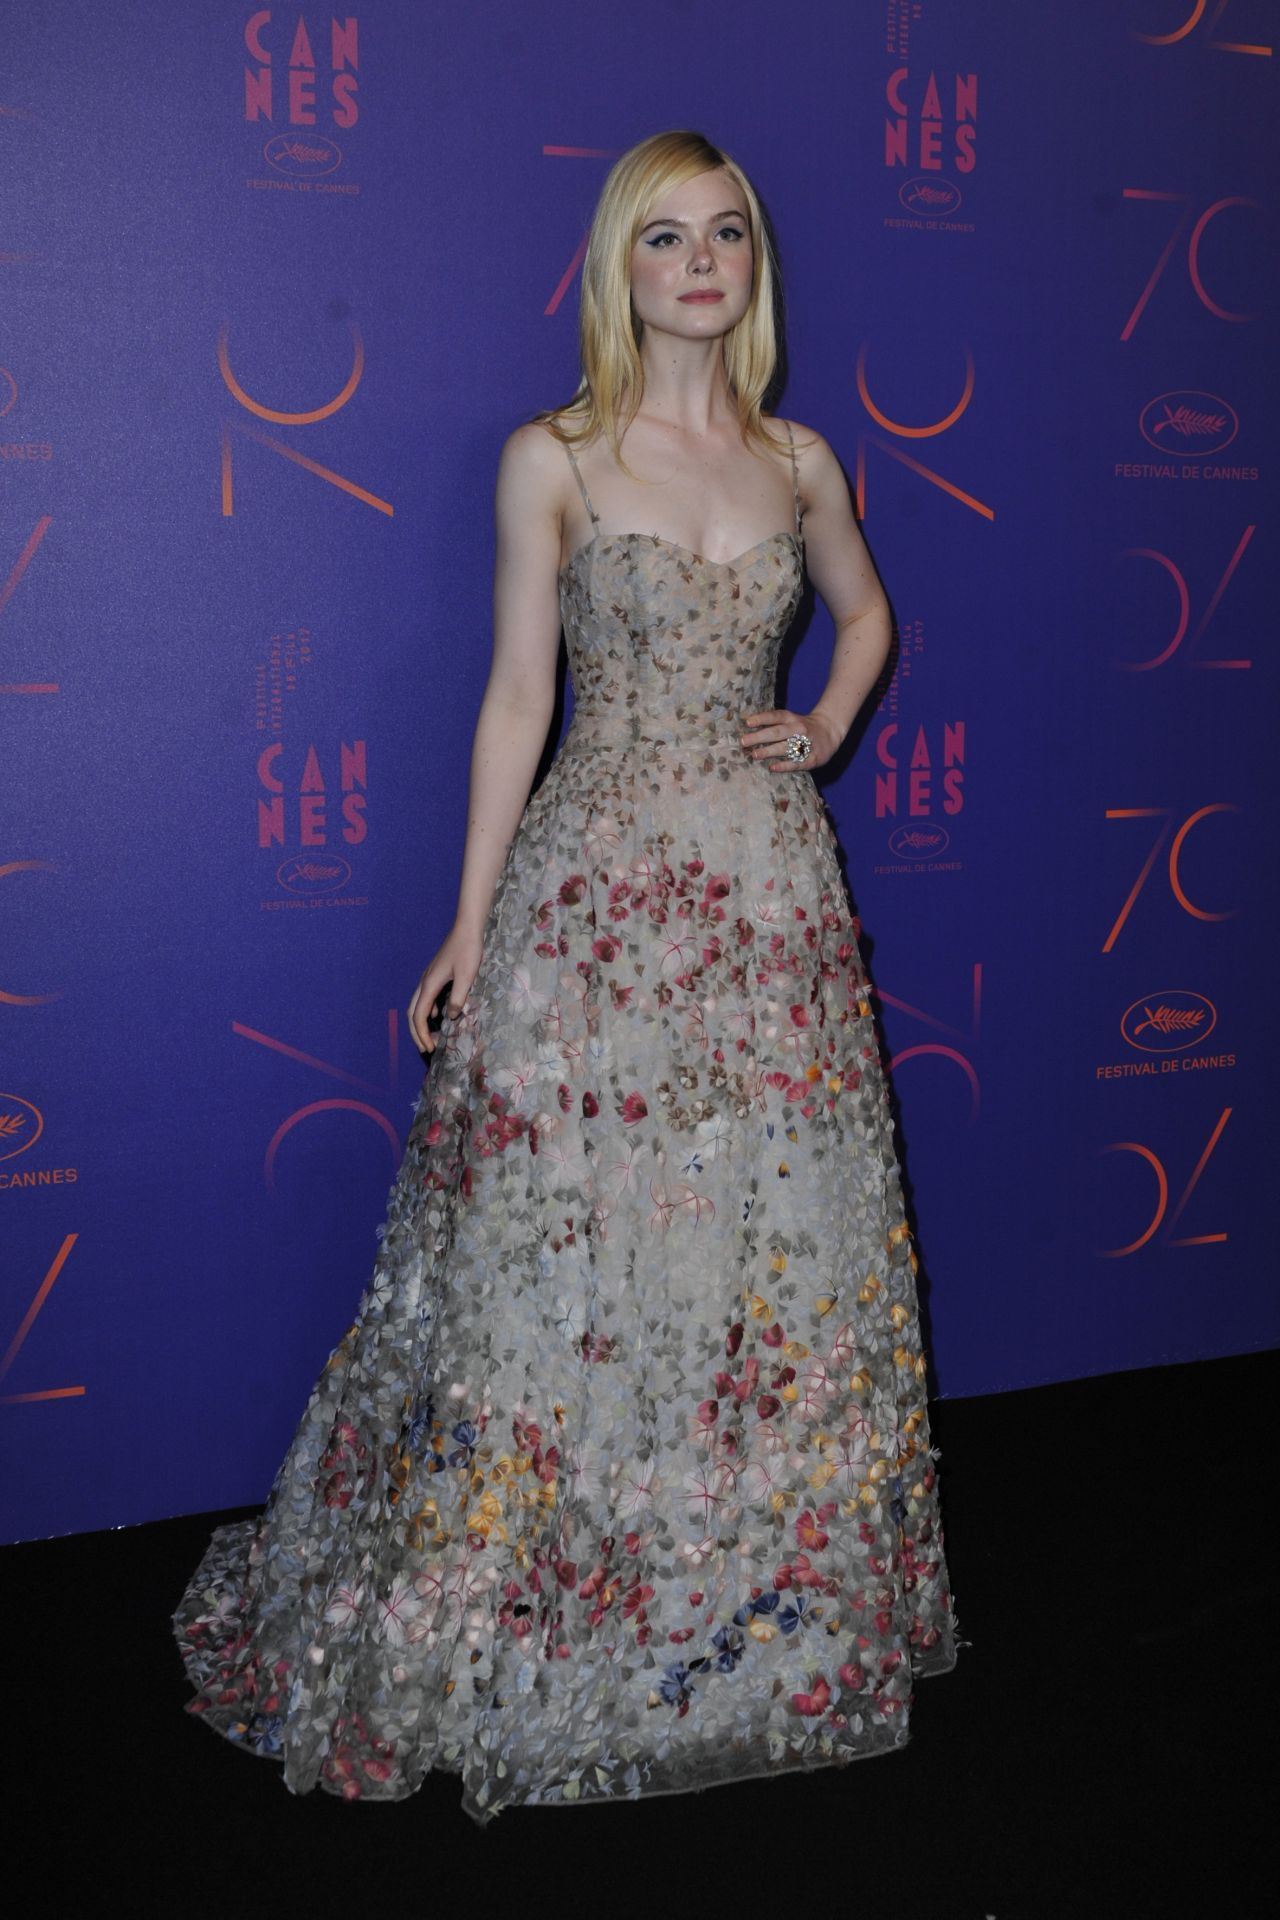 #Cannes, #CannesFilmFestival, #Elle, #ElleFanning, #Movie Elle Fanning at 70th Anniversary Dinner – Cannes Film Festival 05/23/2017 | Celebrity Uncensored! Read more: http://celxxx.com/2017/05/elle-fanning-at-70th-anniversary-dinner-cannes-film-festival-05232017/